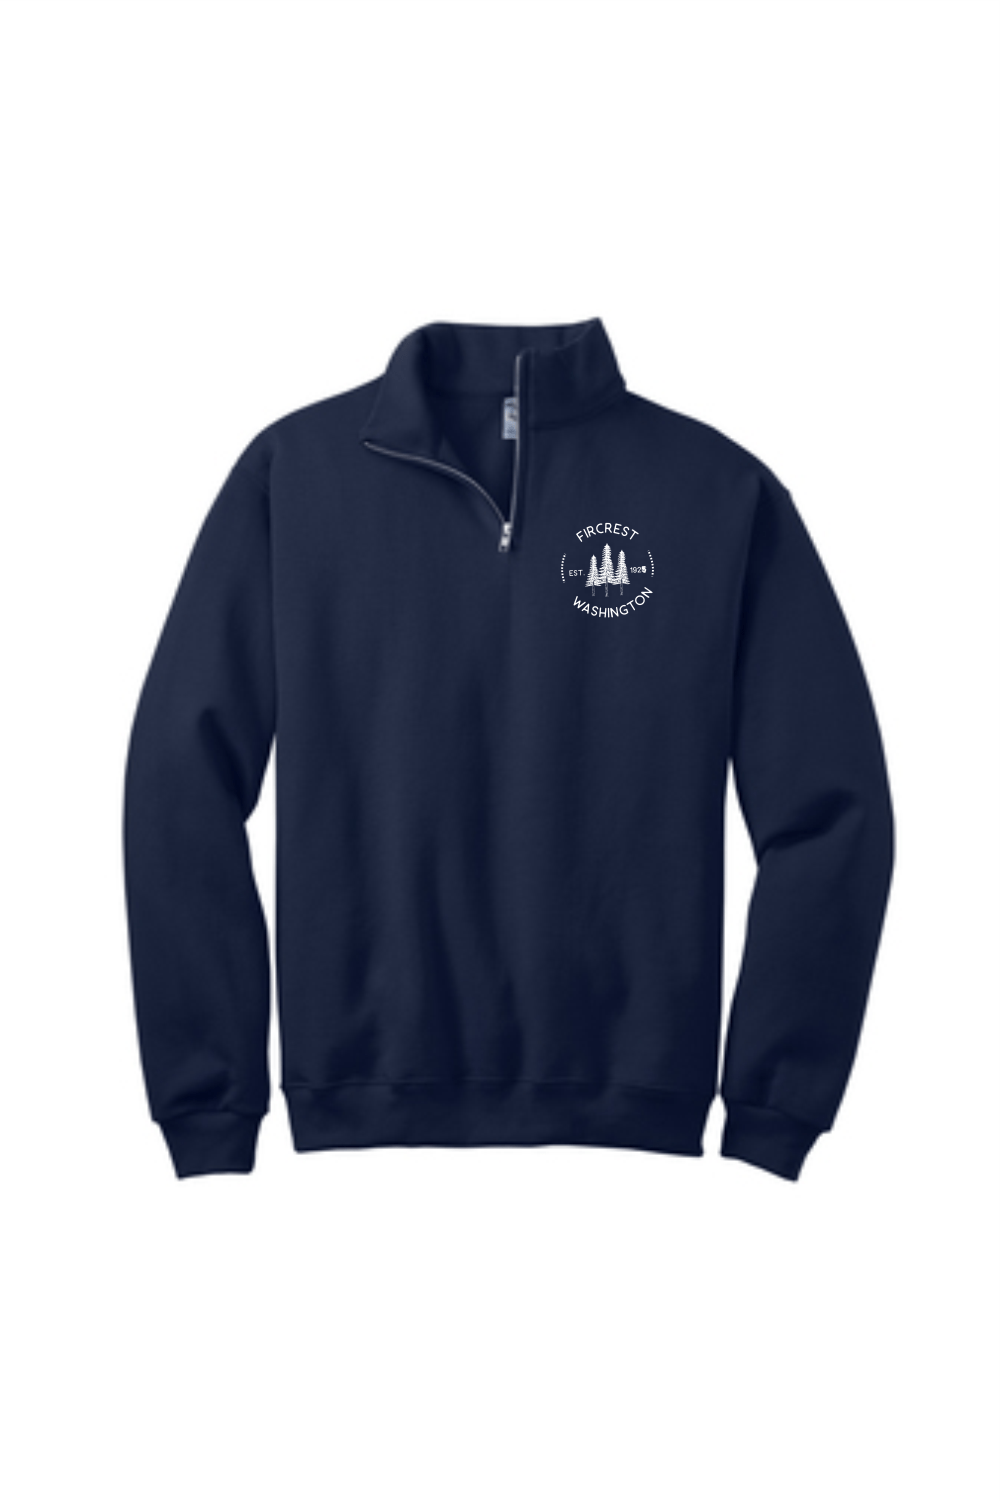 Fircrest 1/4 Zip Sweatshirt